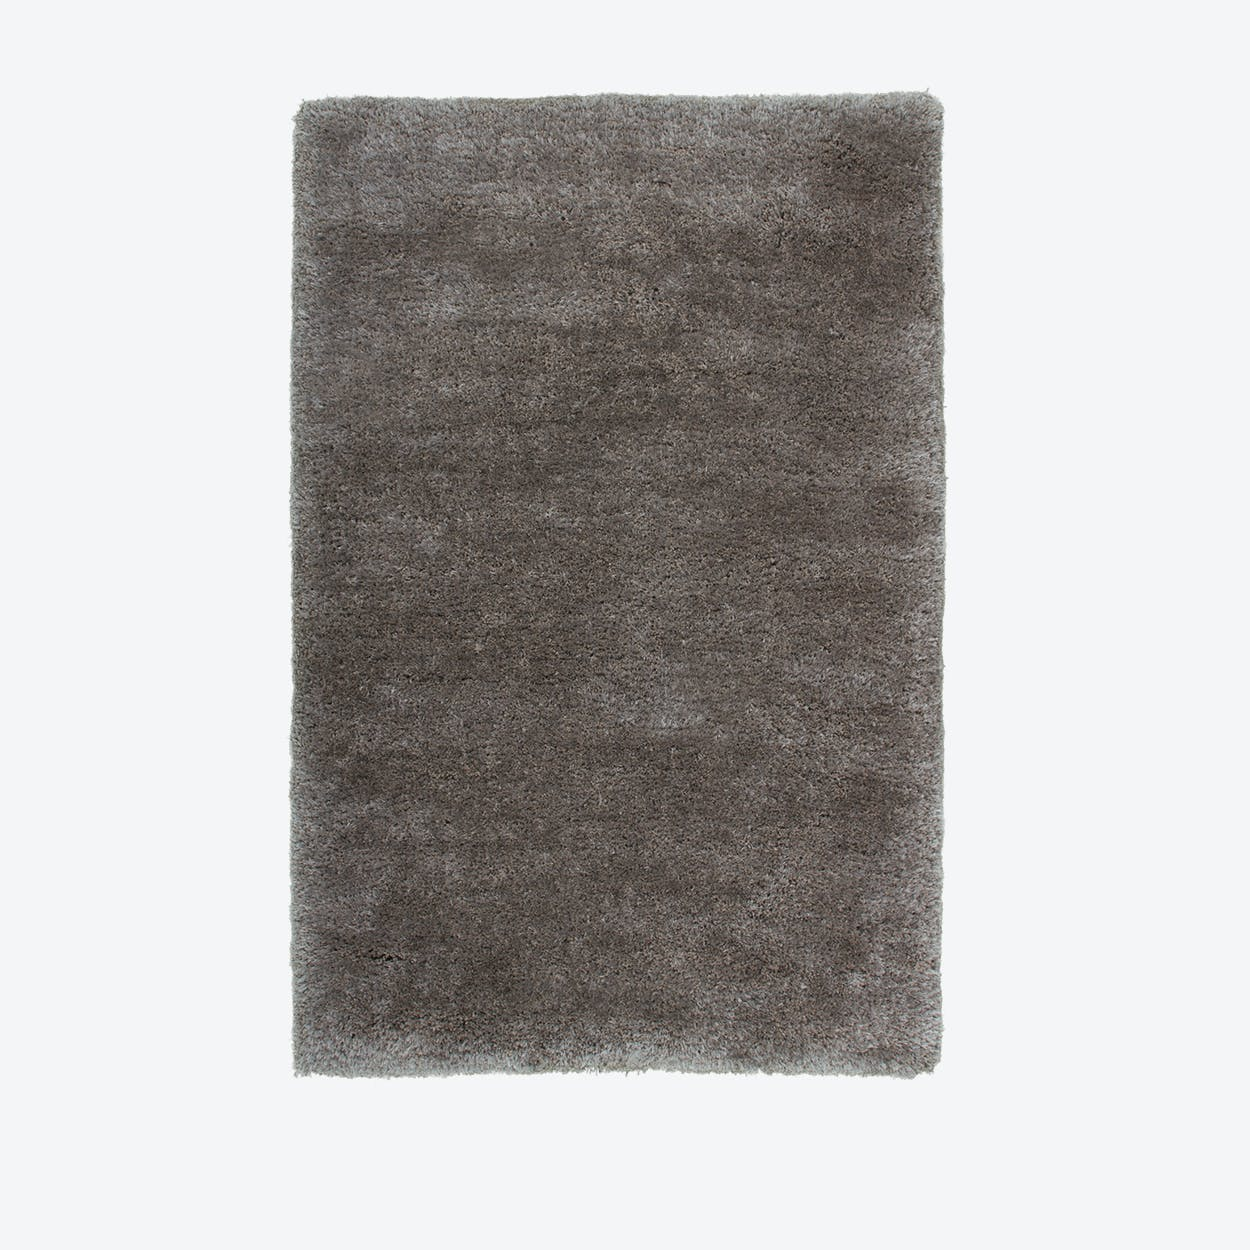 My Tendence 666 Silver Rug